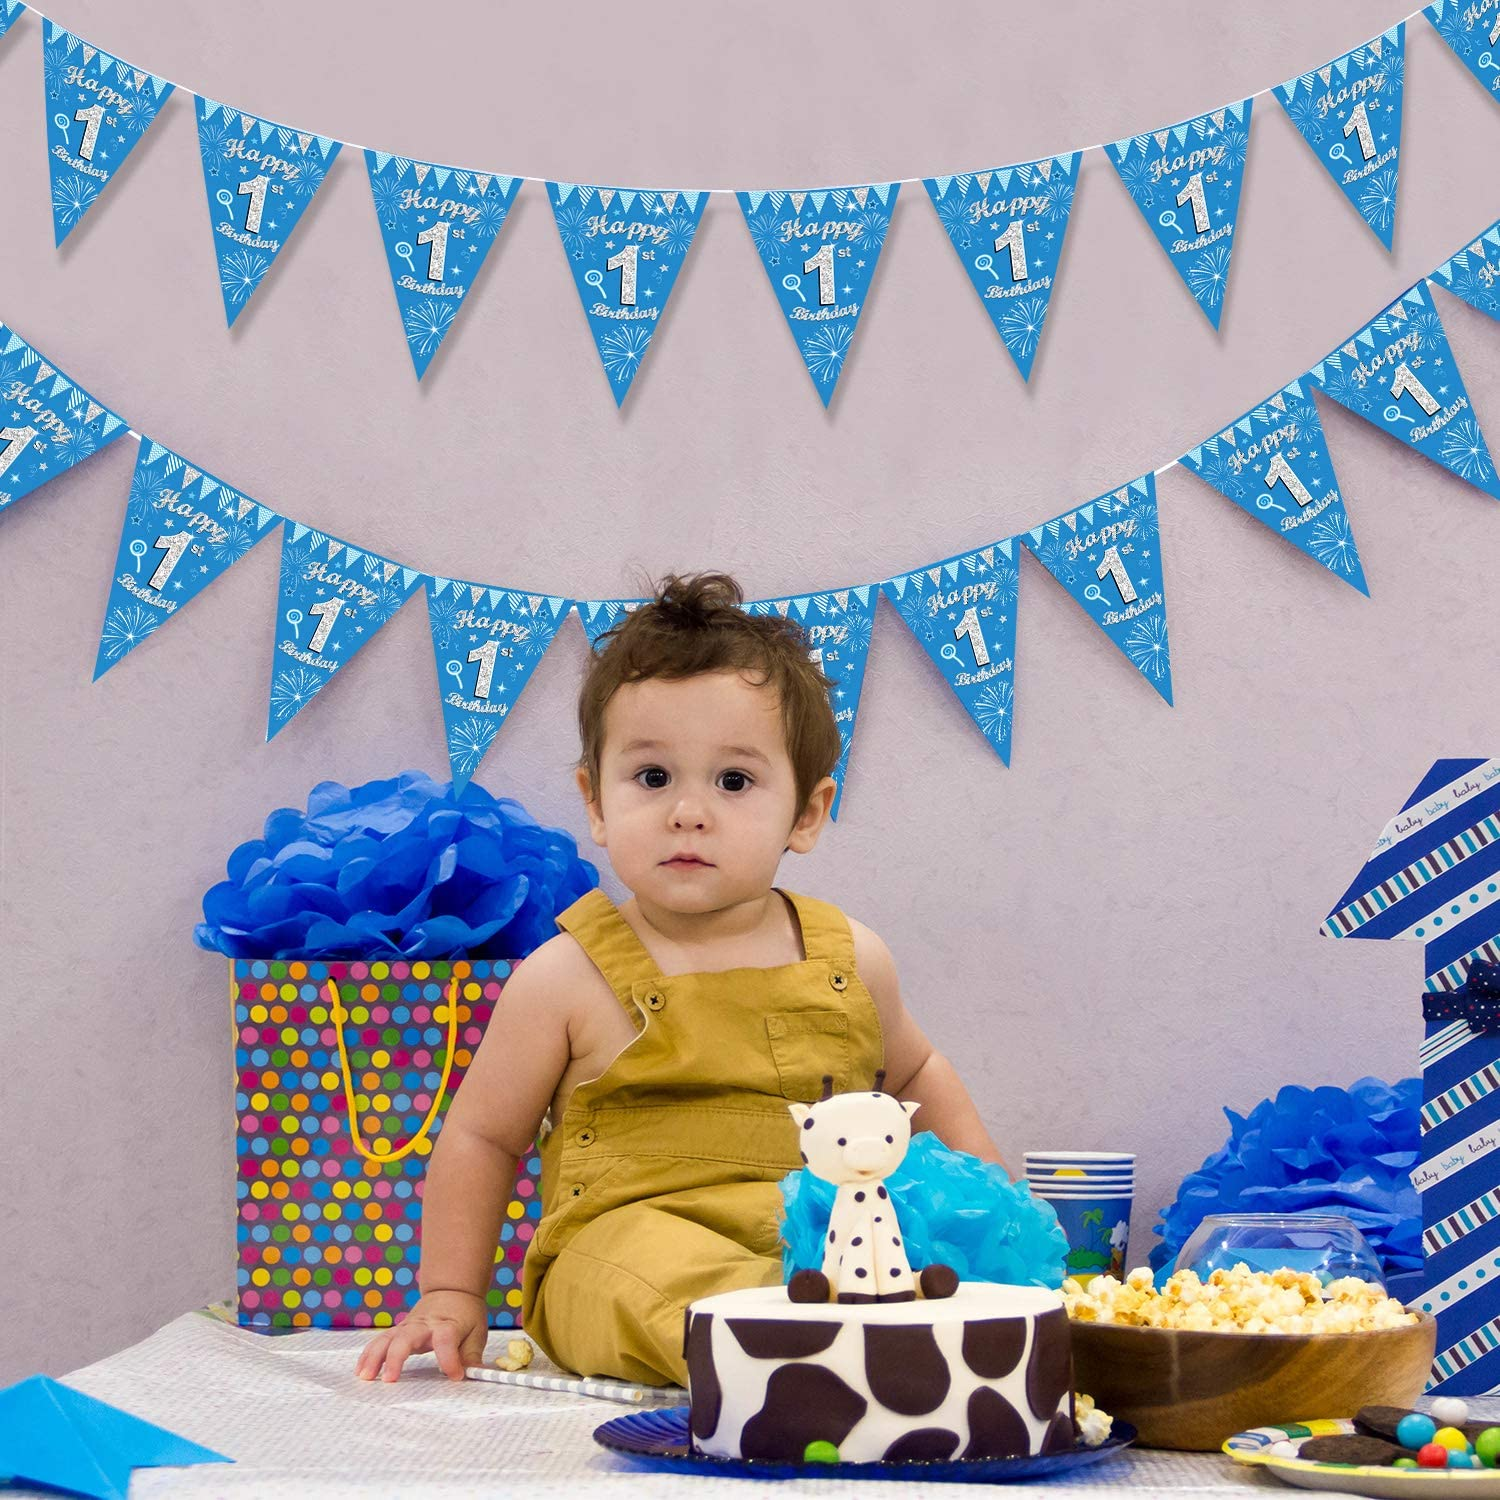 1st Birthday Party Decoration 1st Birthday Banner Flag Pennant Bunting Triangle Party Bunting 9.8 ft Blue Silver Birthday Pennant Banner for Baby Shower Birthday Anniversary Party Supplies 5 Strings